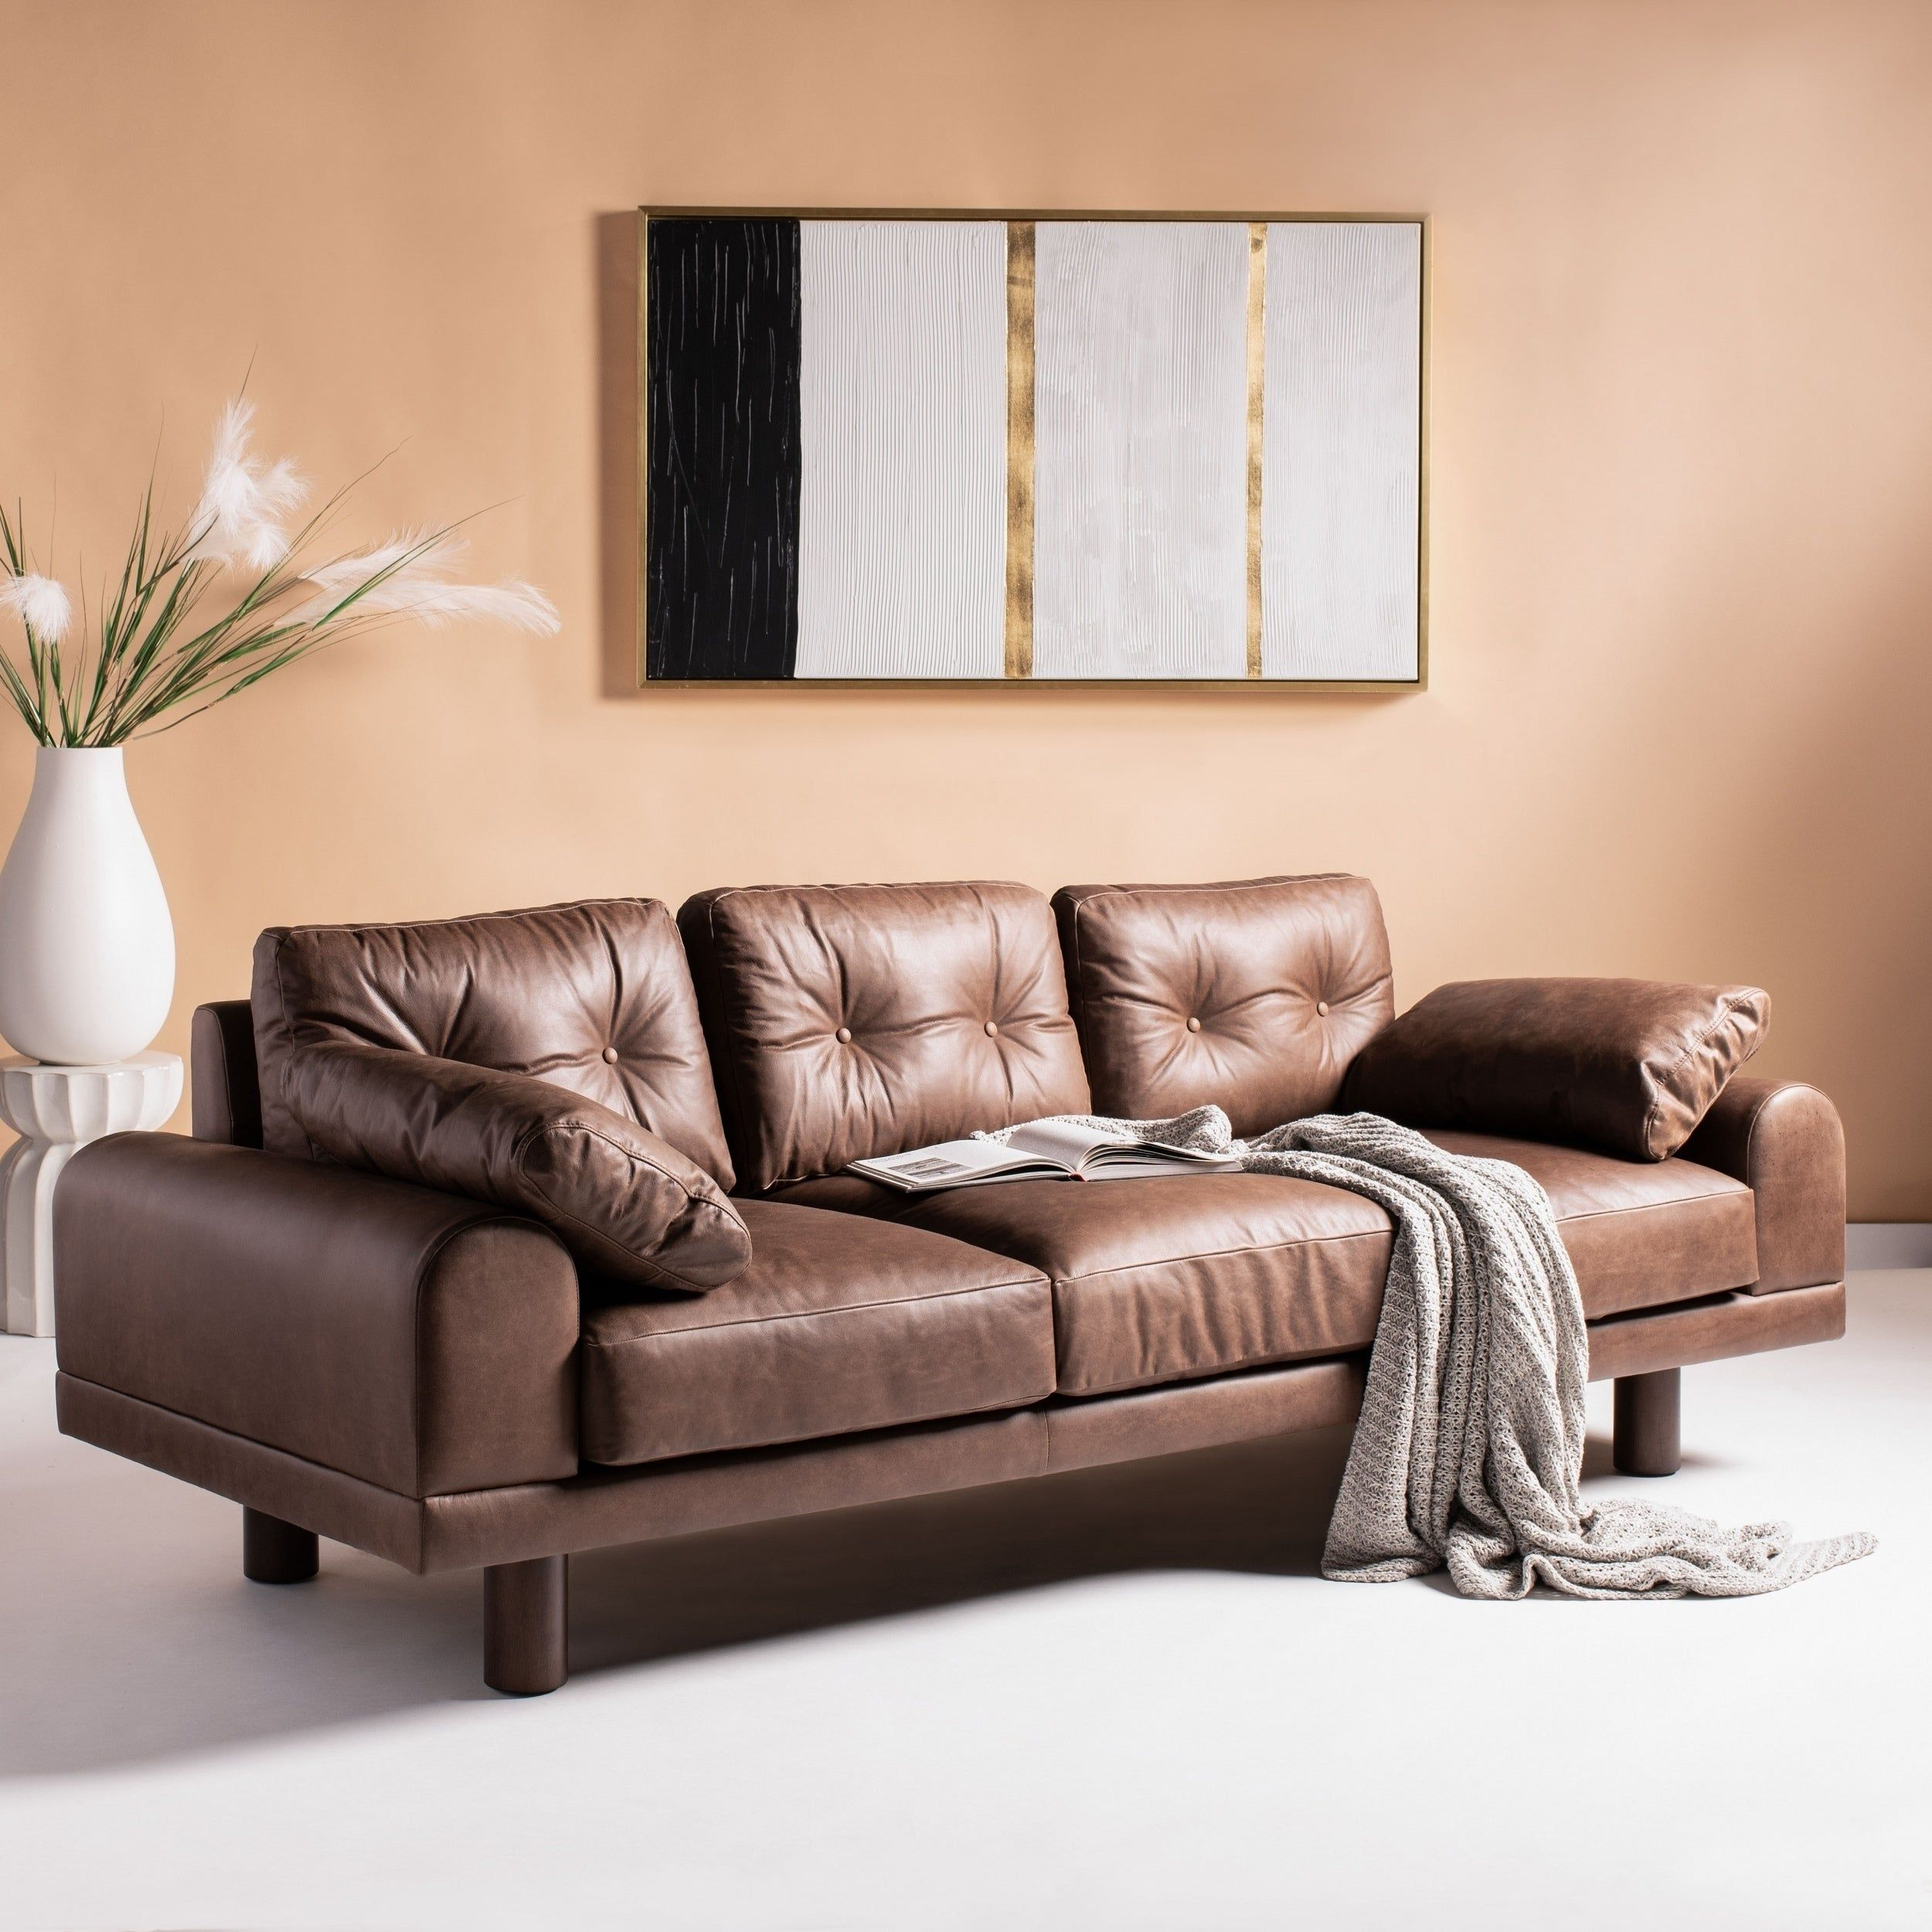 Safavieh Couture Scooter Italian Leather Sofa Brown Leather